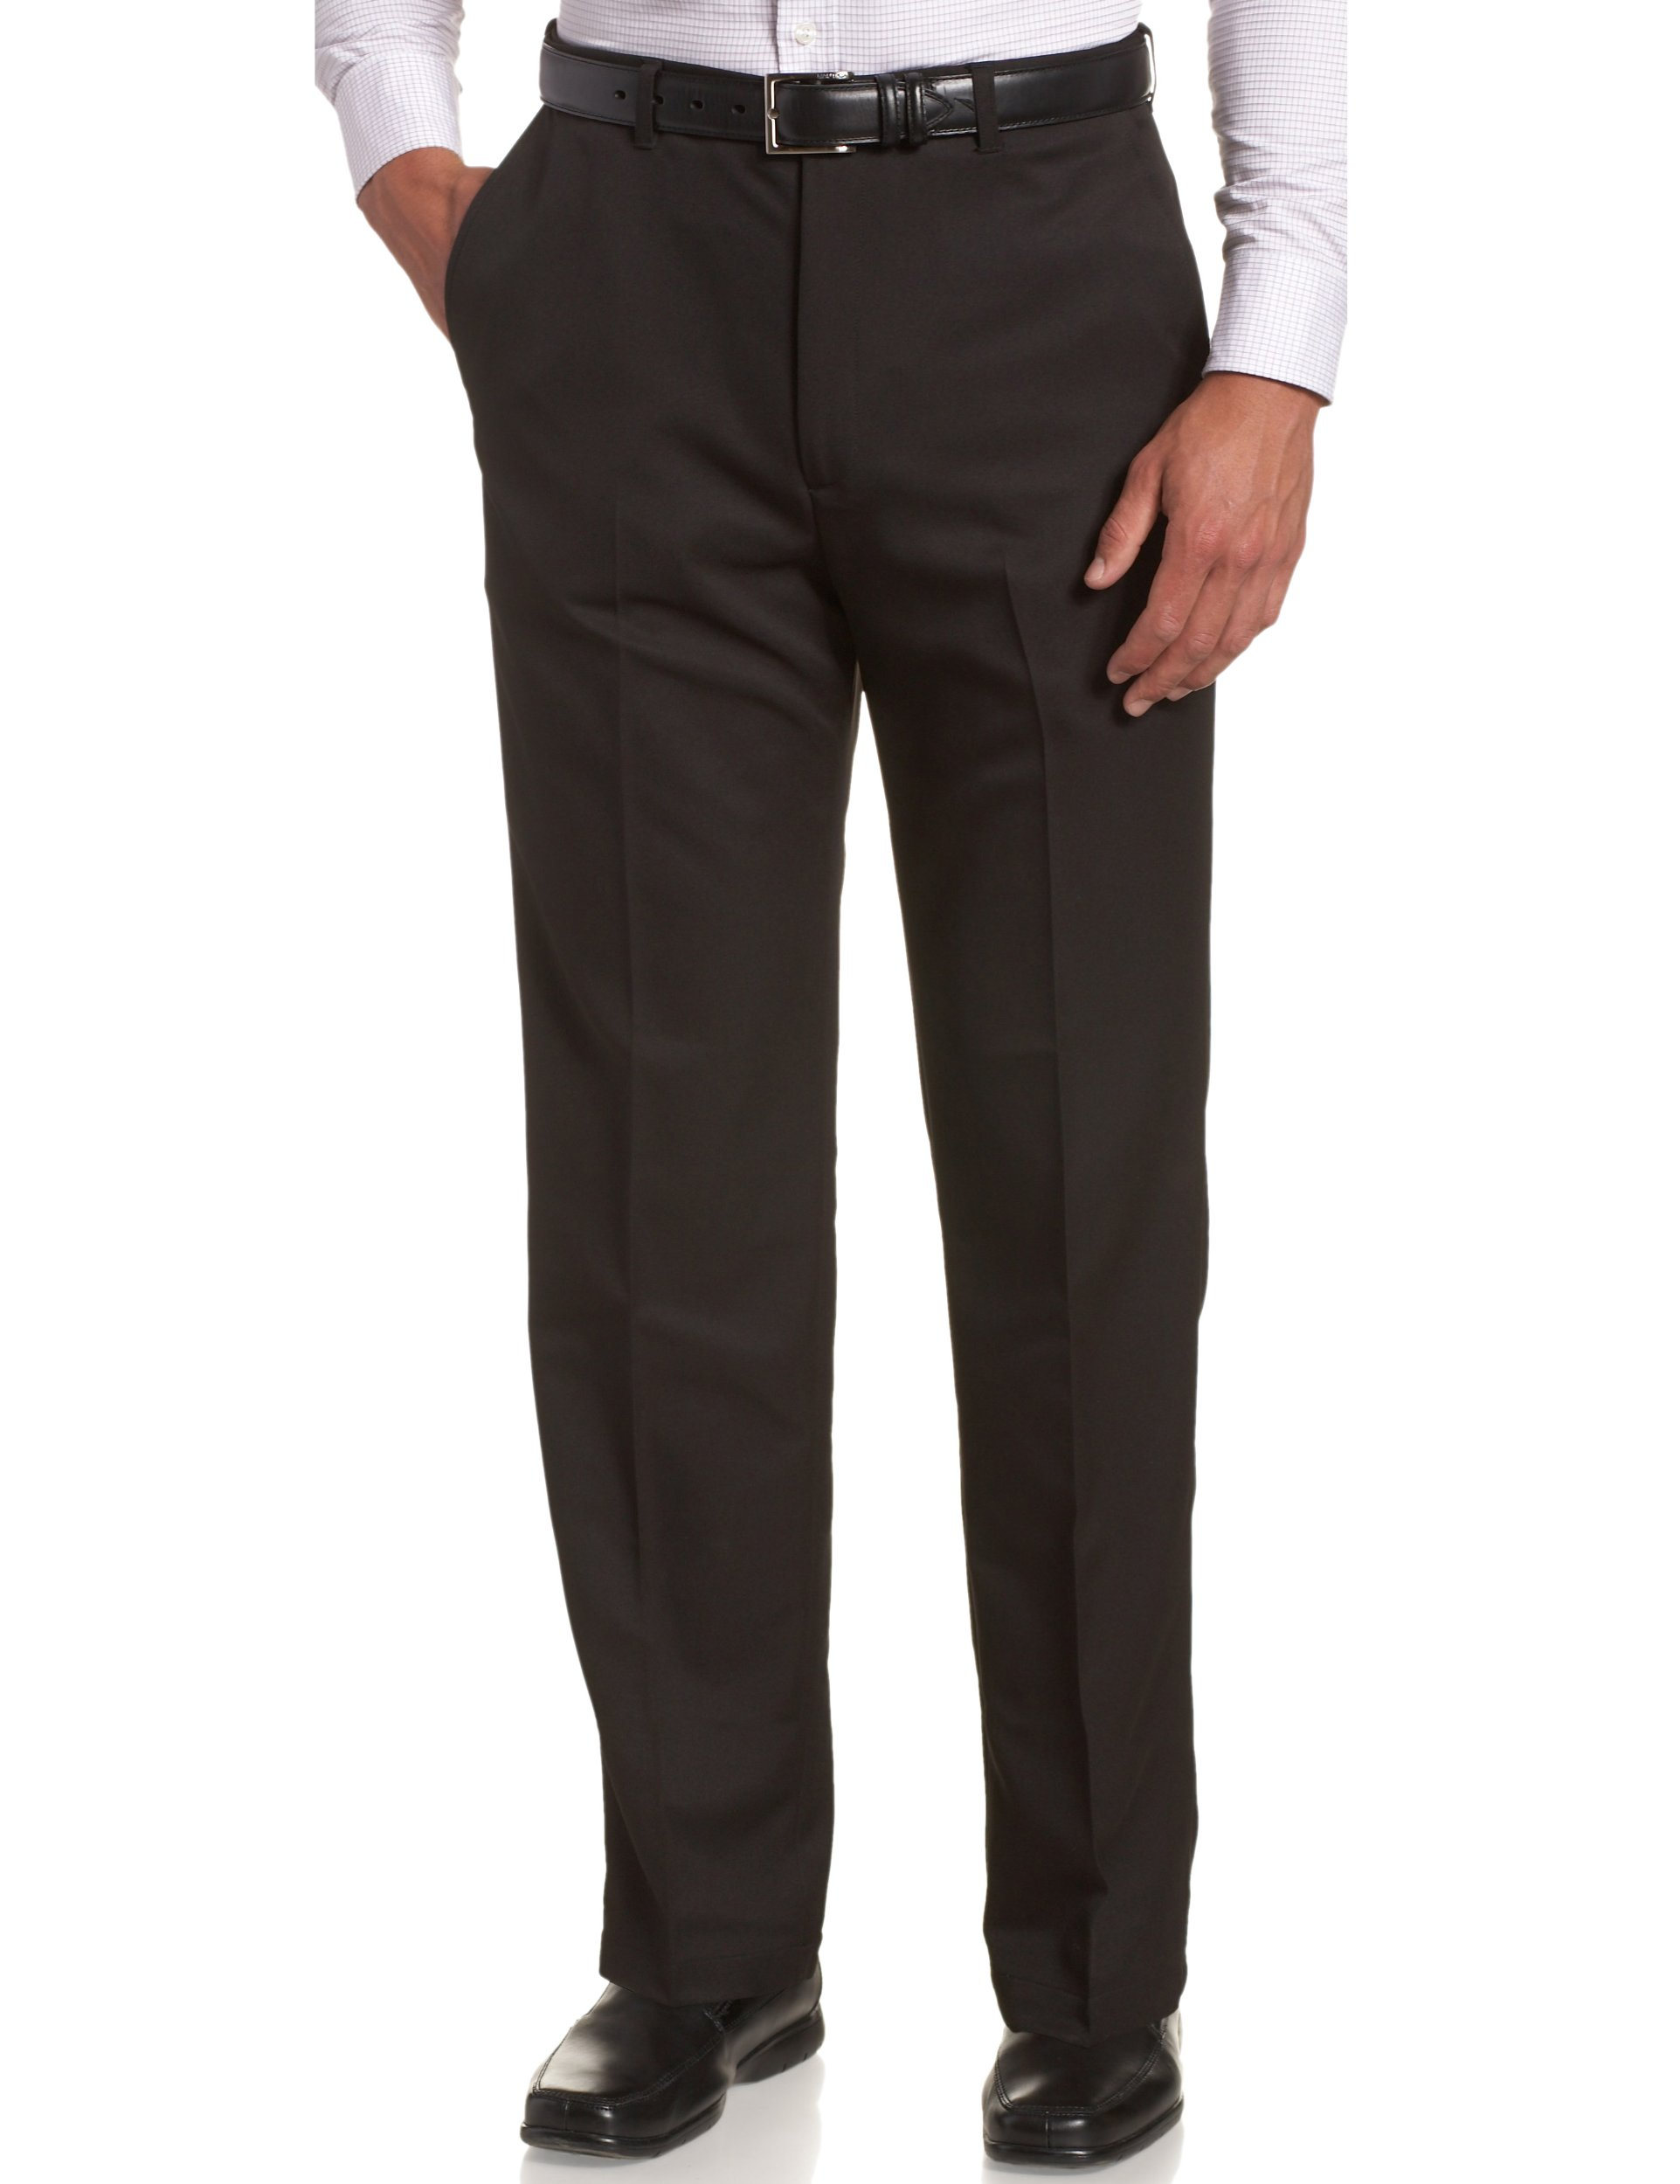 Haggar Men's Cool 18 Hidden Comfort Waist Plain Front Pant,Black,34x32